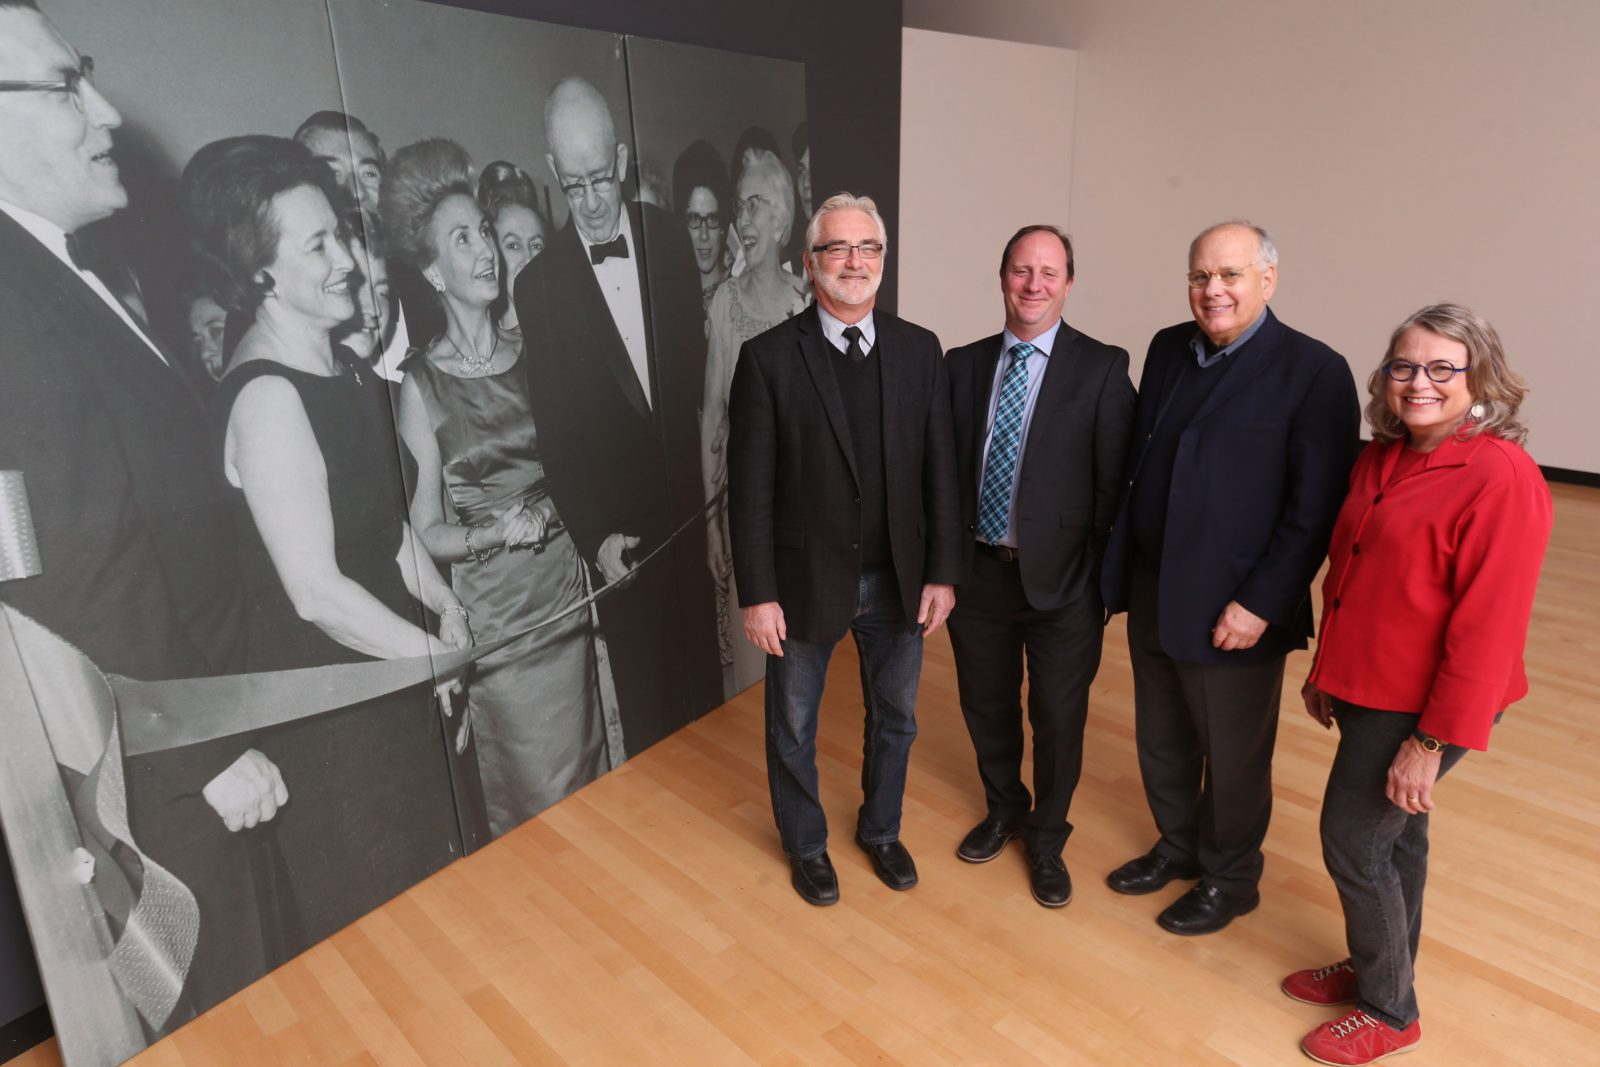 The Burchfield Penney is celebrating its 50th anniversary,  It's re-creating the first exhibition to mark the occasion.  Burchfield staff stand in front of a photo of the opening of the Charles Burchfield Center in 1966. Burchfield staff from left are Associate Director of Public Programming, Don Metz, Chief Curator Scott Propeack, Director Anthony Bannon and Burchfield Scholar Nancy Weekly. (Sharon Cantillon/Buffalo News)